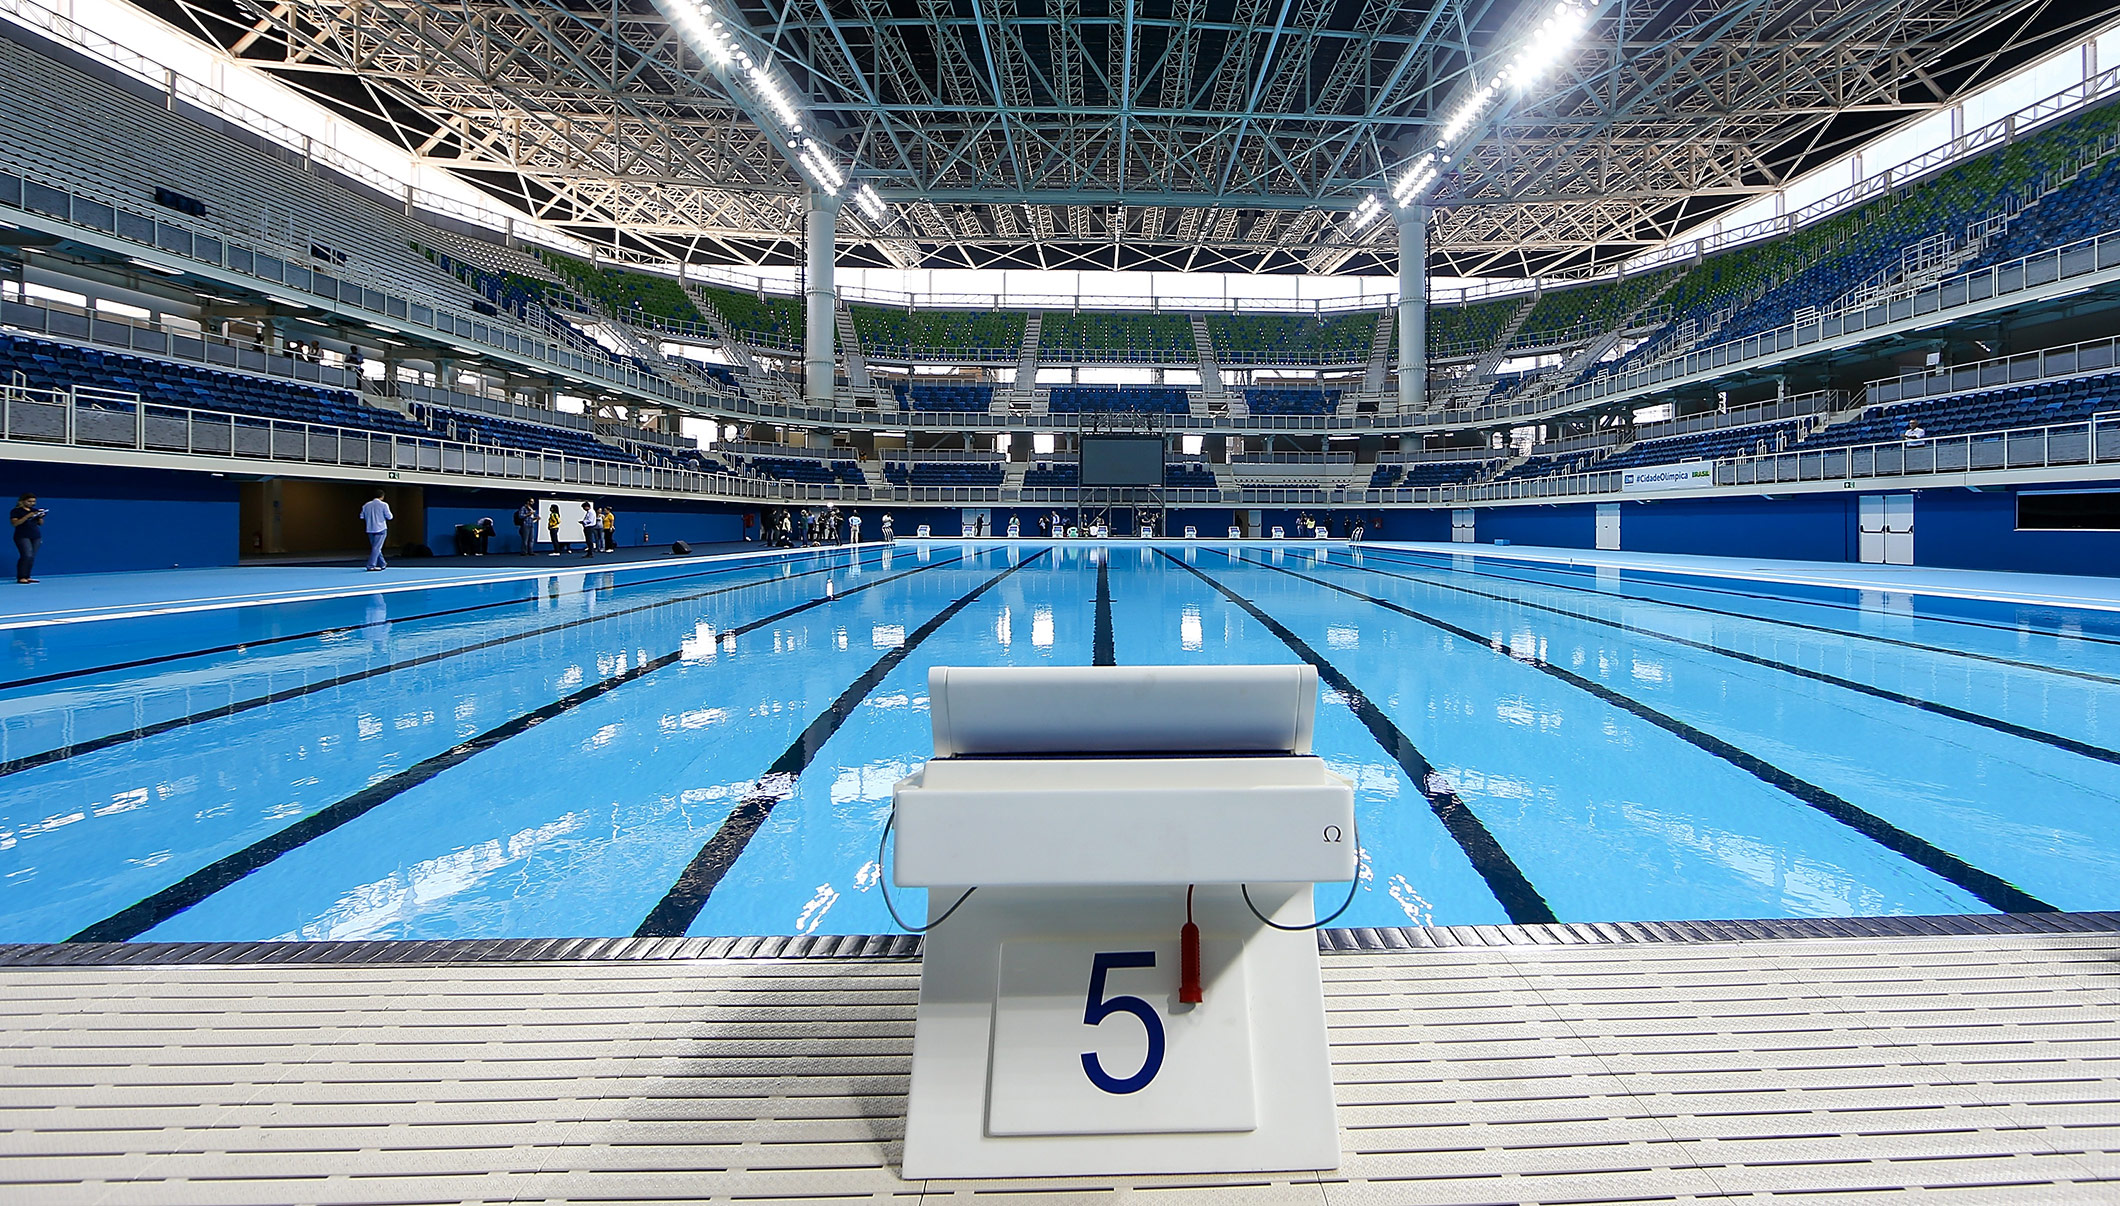 Rio 2016 - Olympic Aquatics Stadium